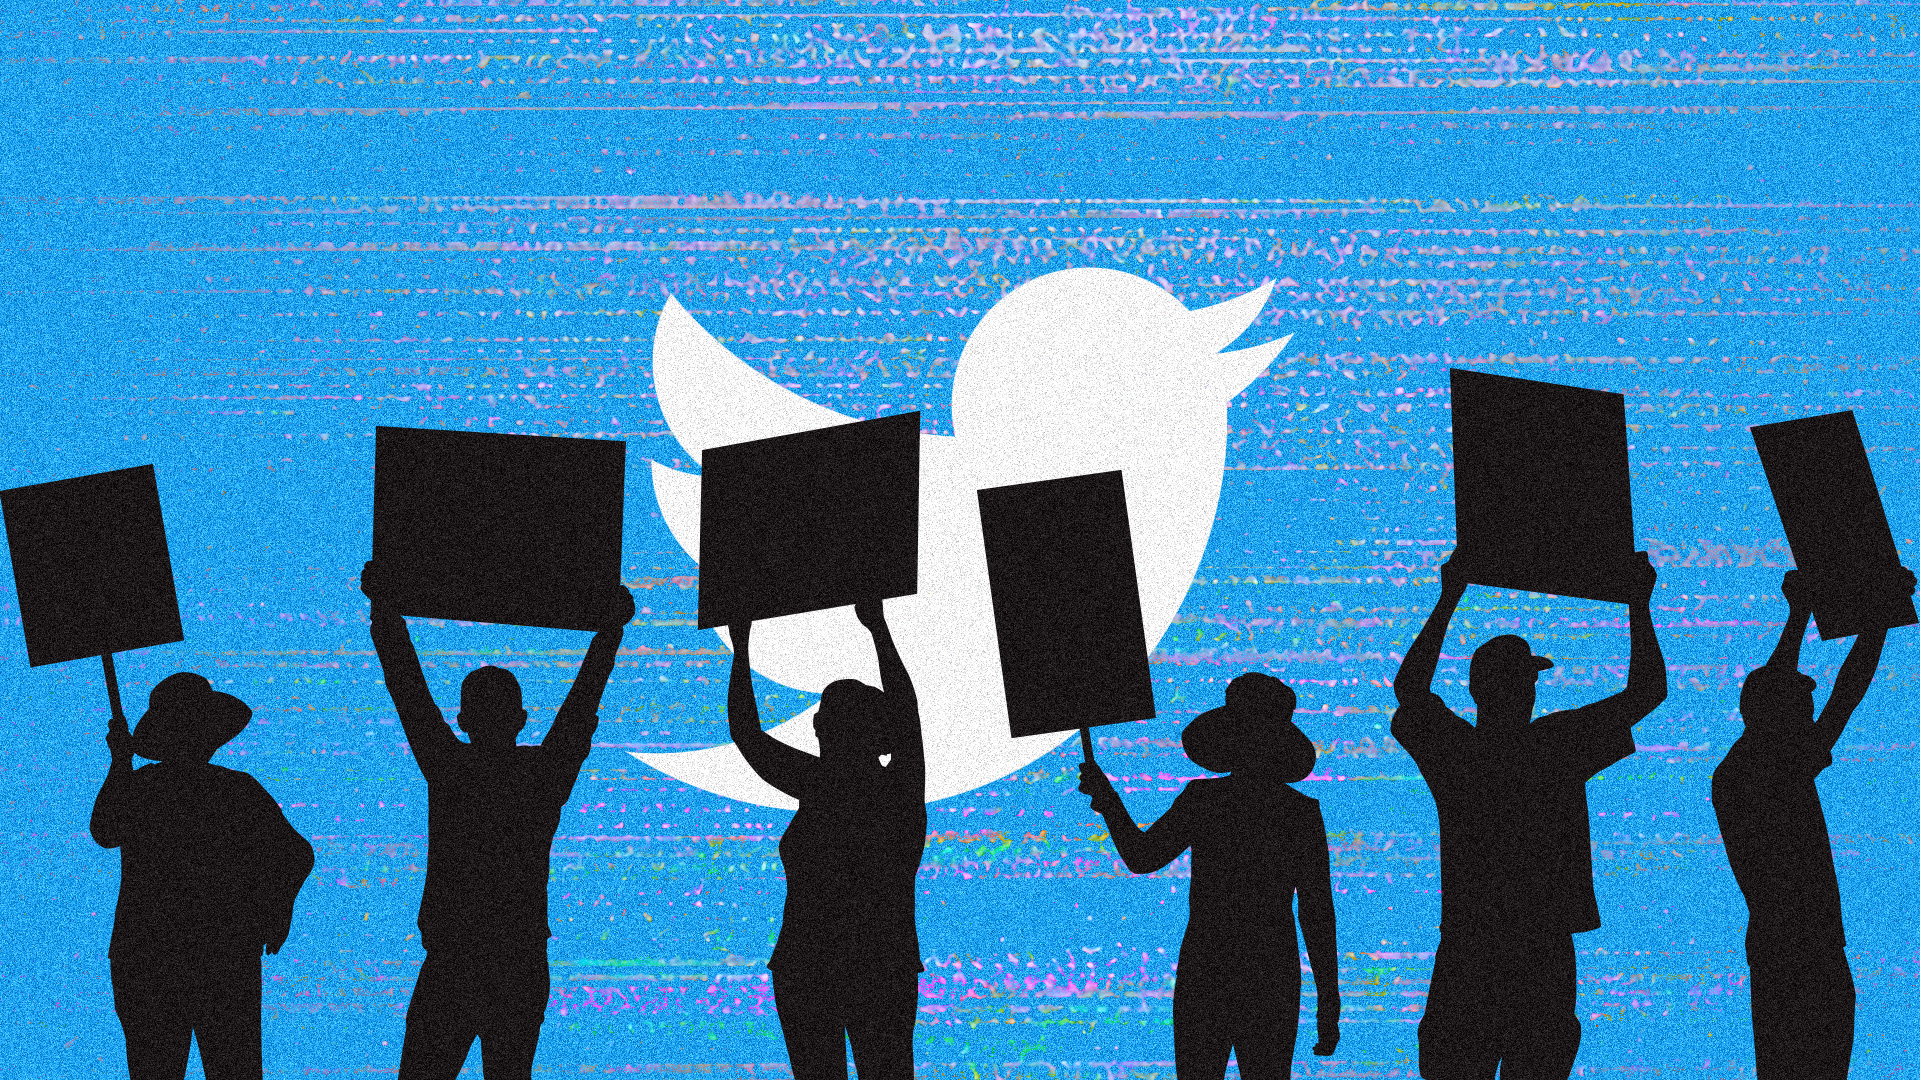 silhouettes of people holding up signs with twitter logo in the background